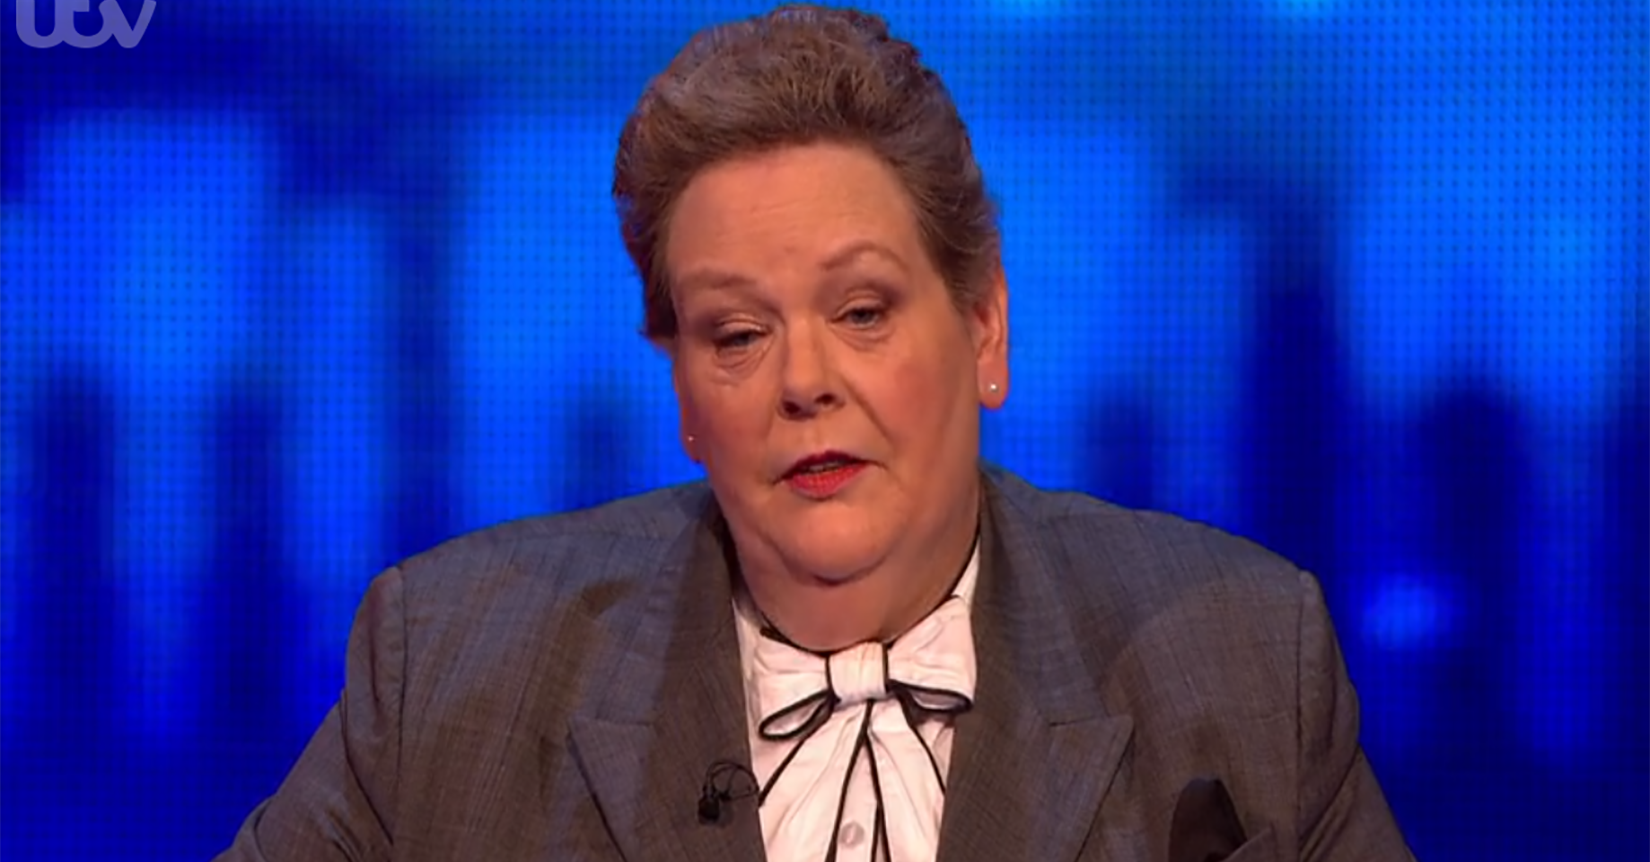 Anne Hegerty responds to concerns about her appearance on Family Chase